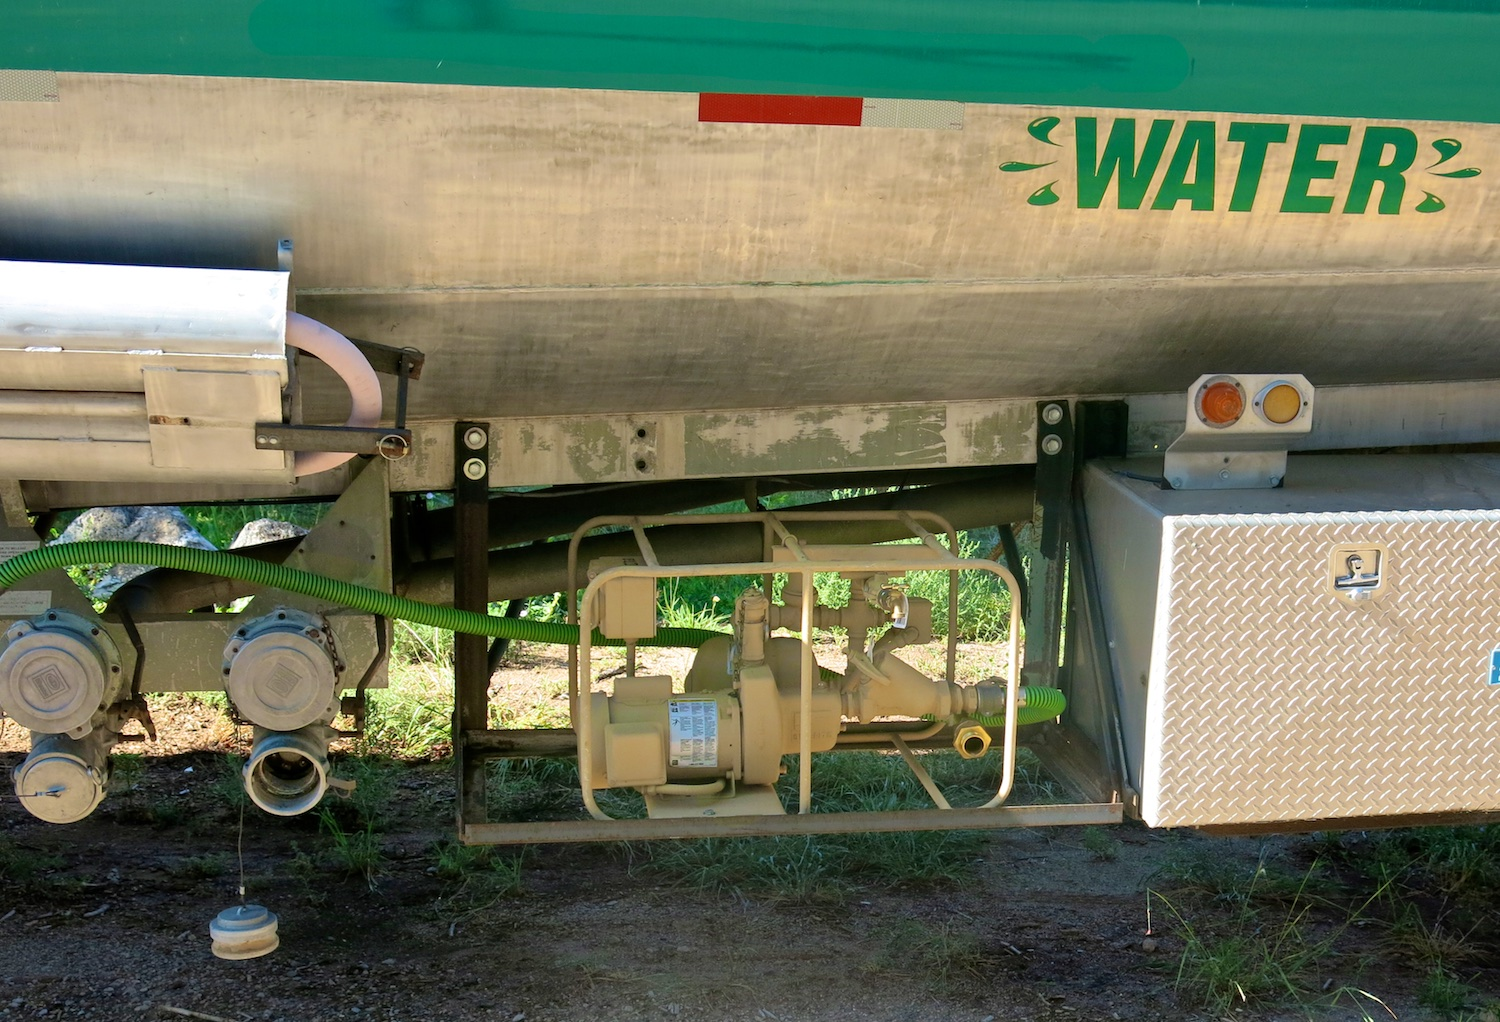 Water Tanker Green w 2842.jpg